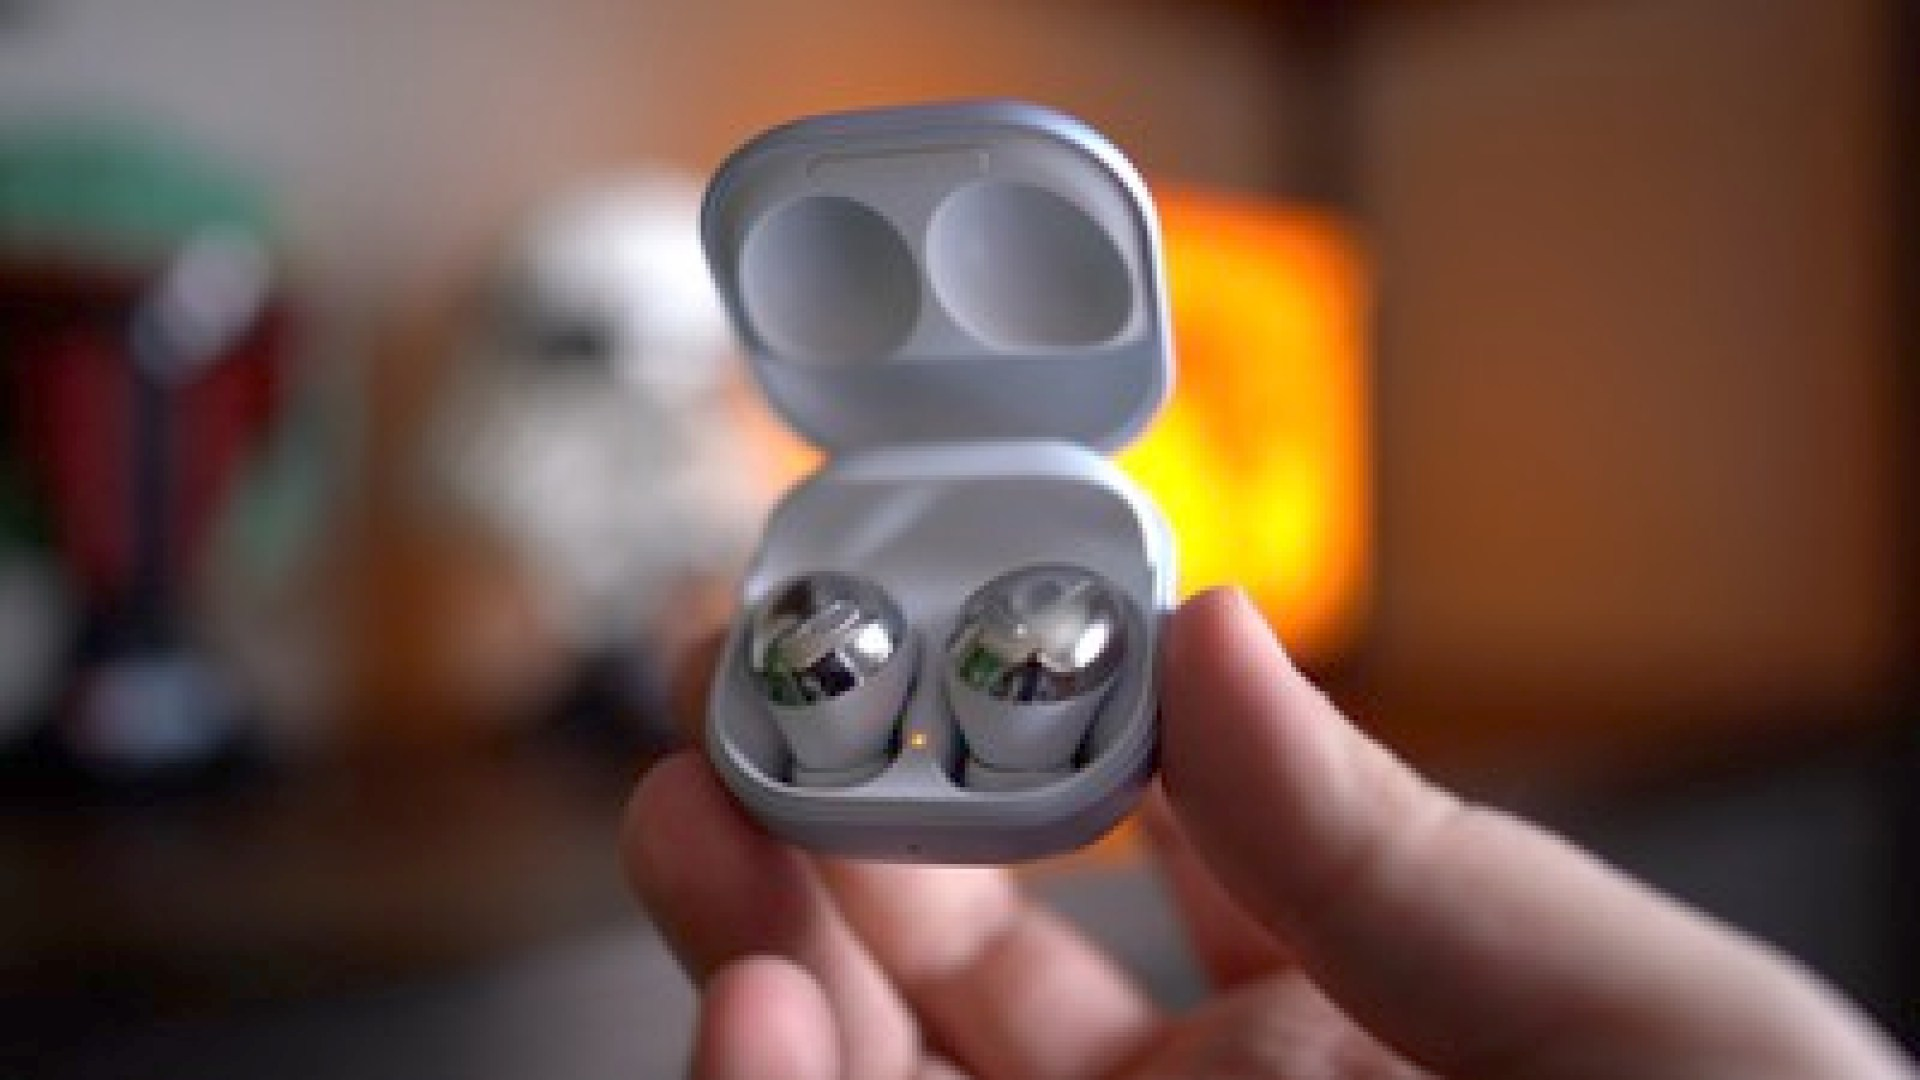 galaxy buds pro just in case